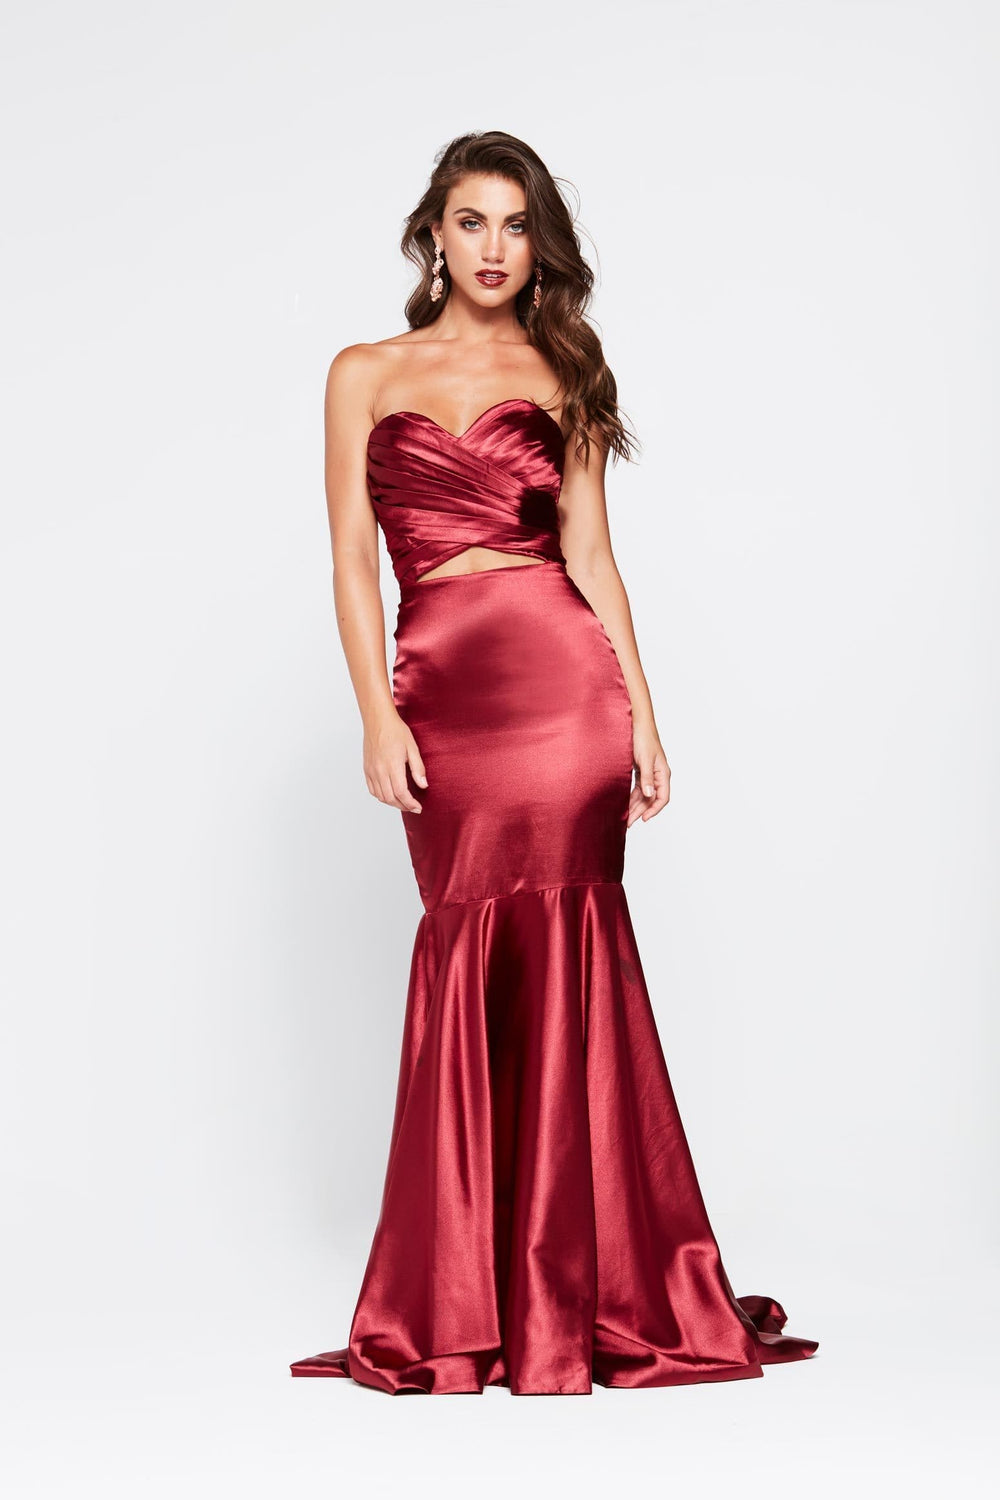 a779593db1 A N Akira - Deep Red Satin Dress with Pleated Bodice and Mermaid Train ...